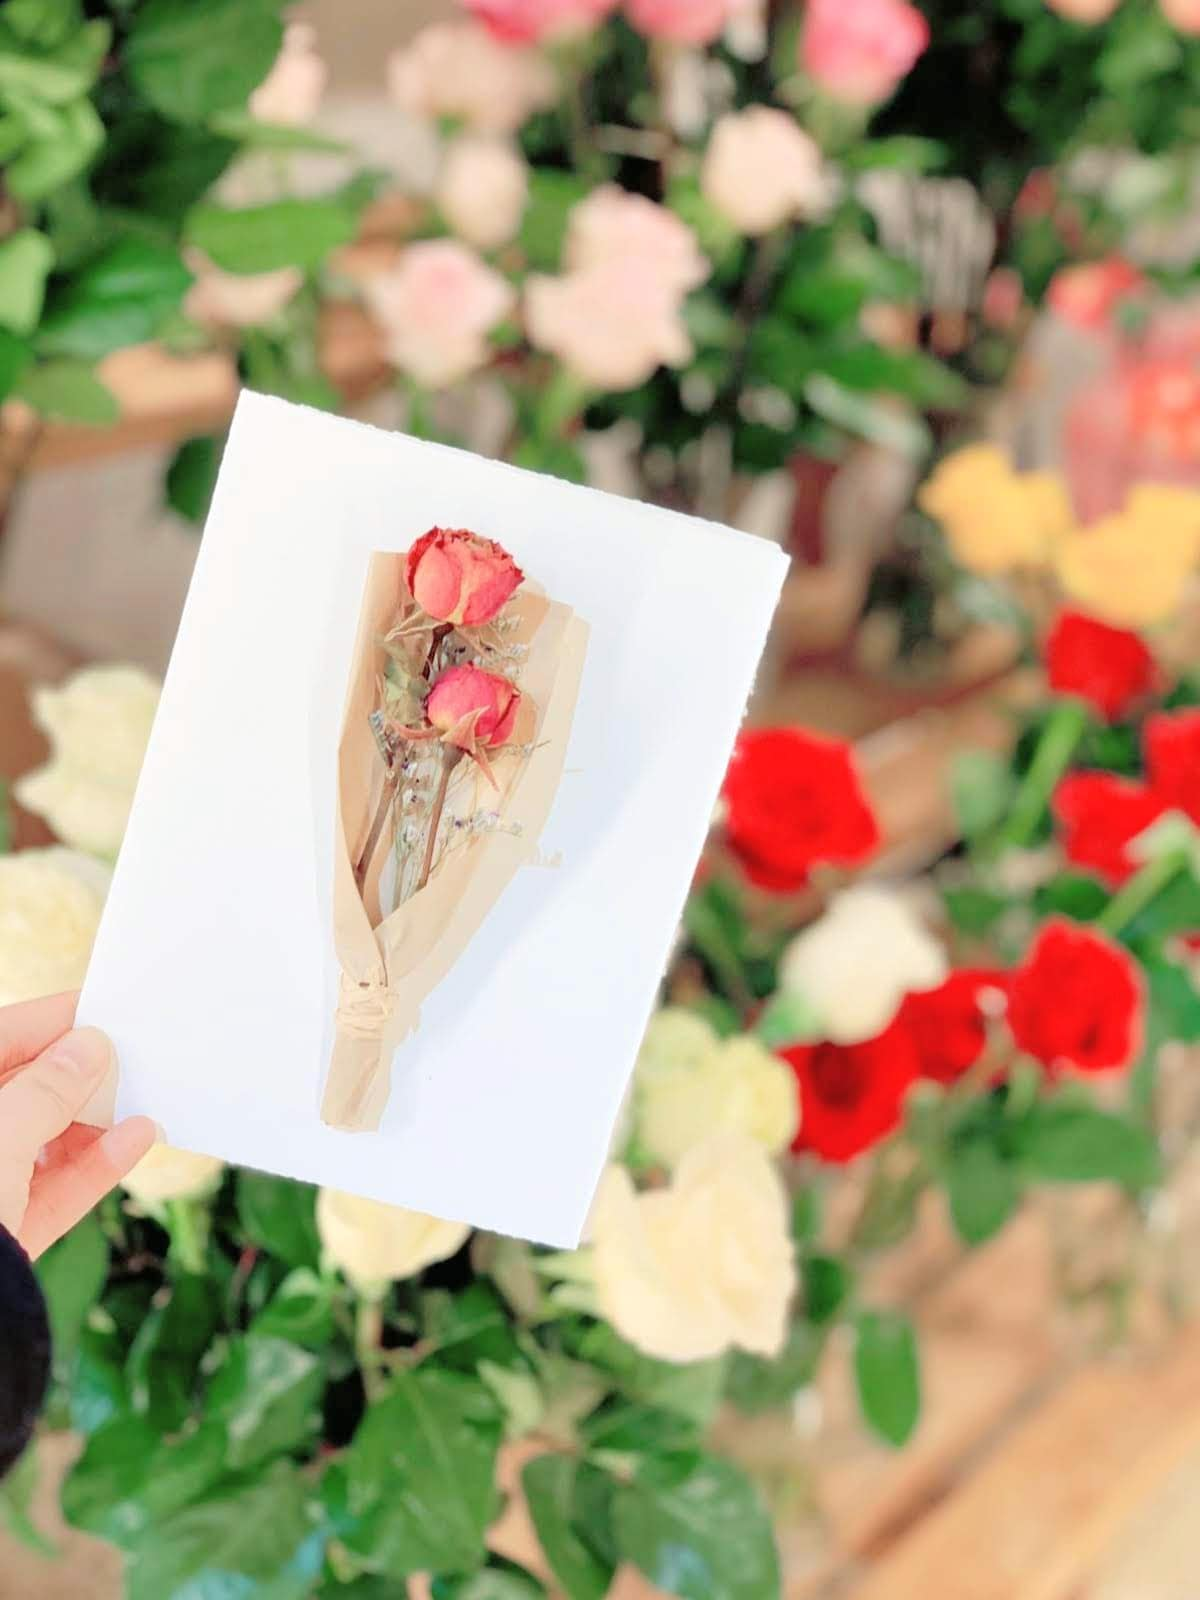 Handmade dry flower card